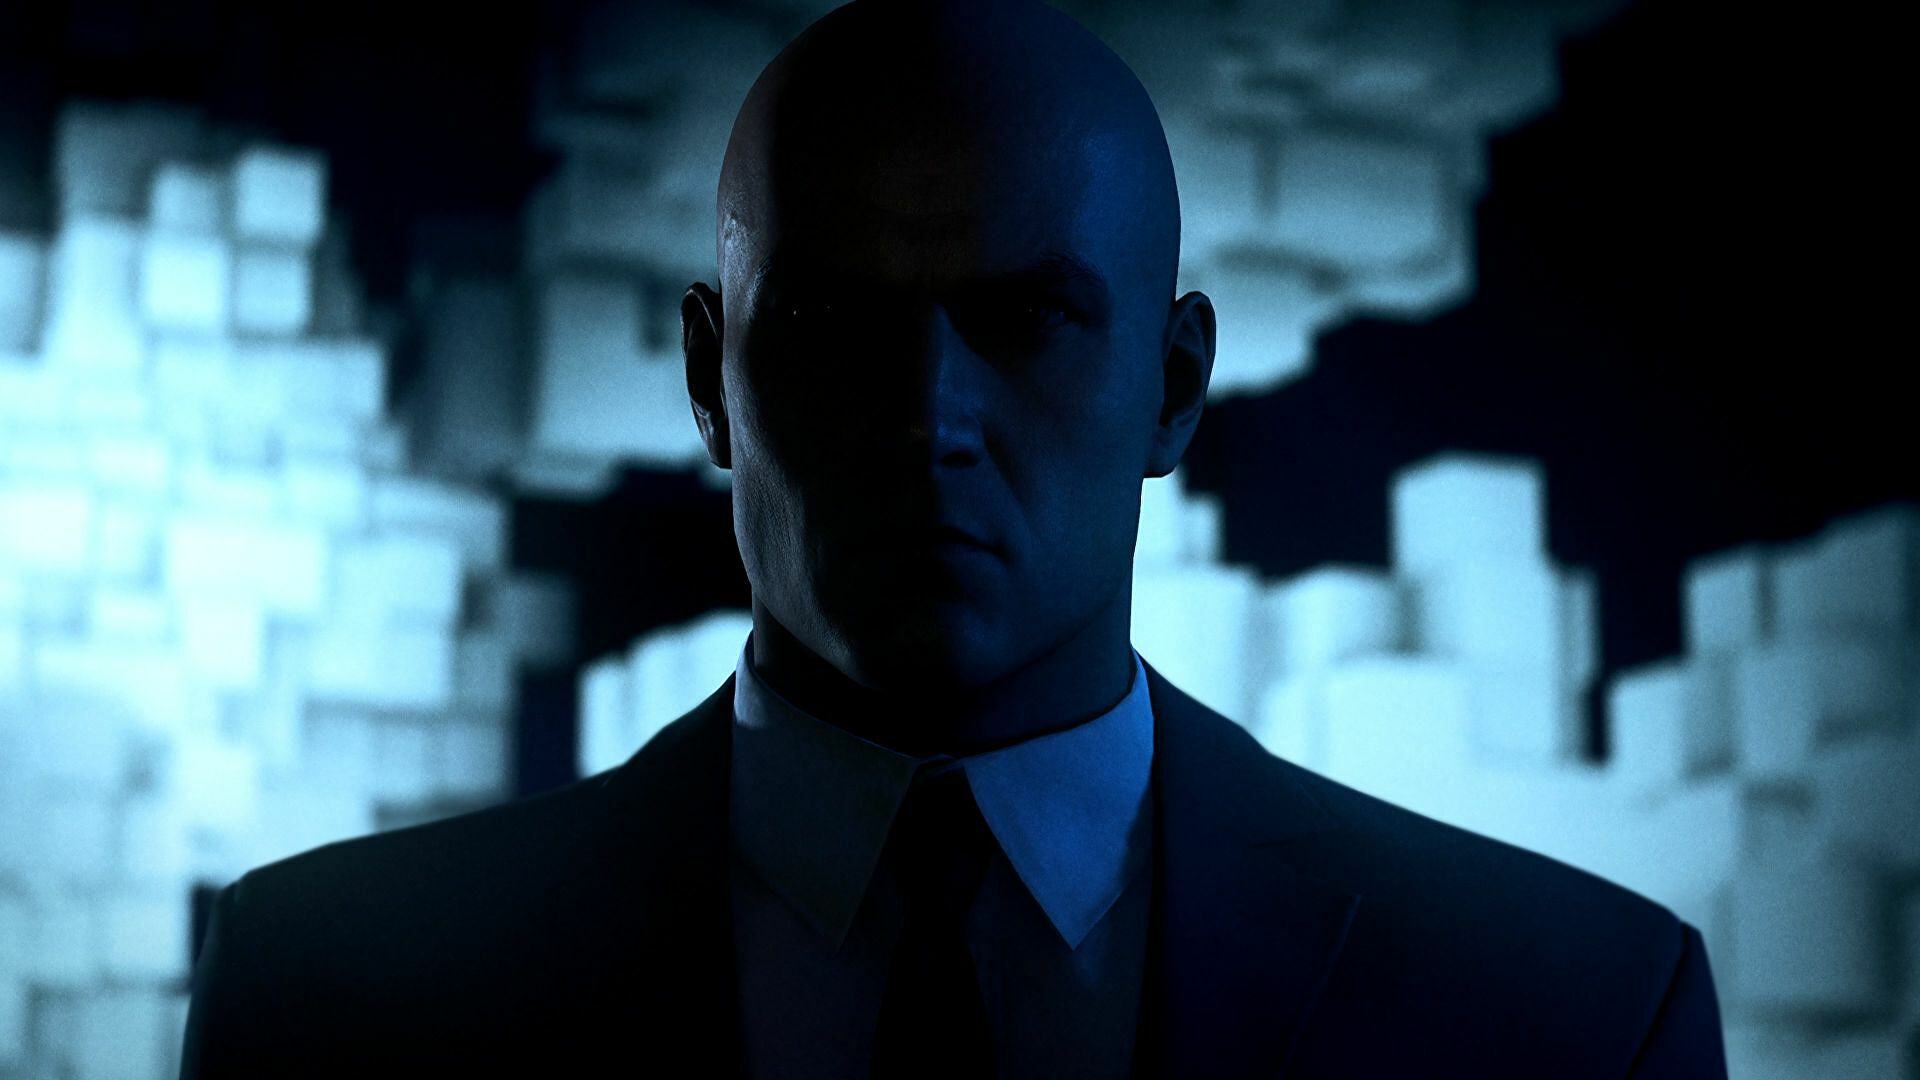 Hitman 3 has already recouped its development costs